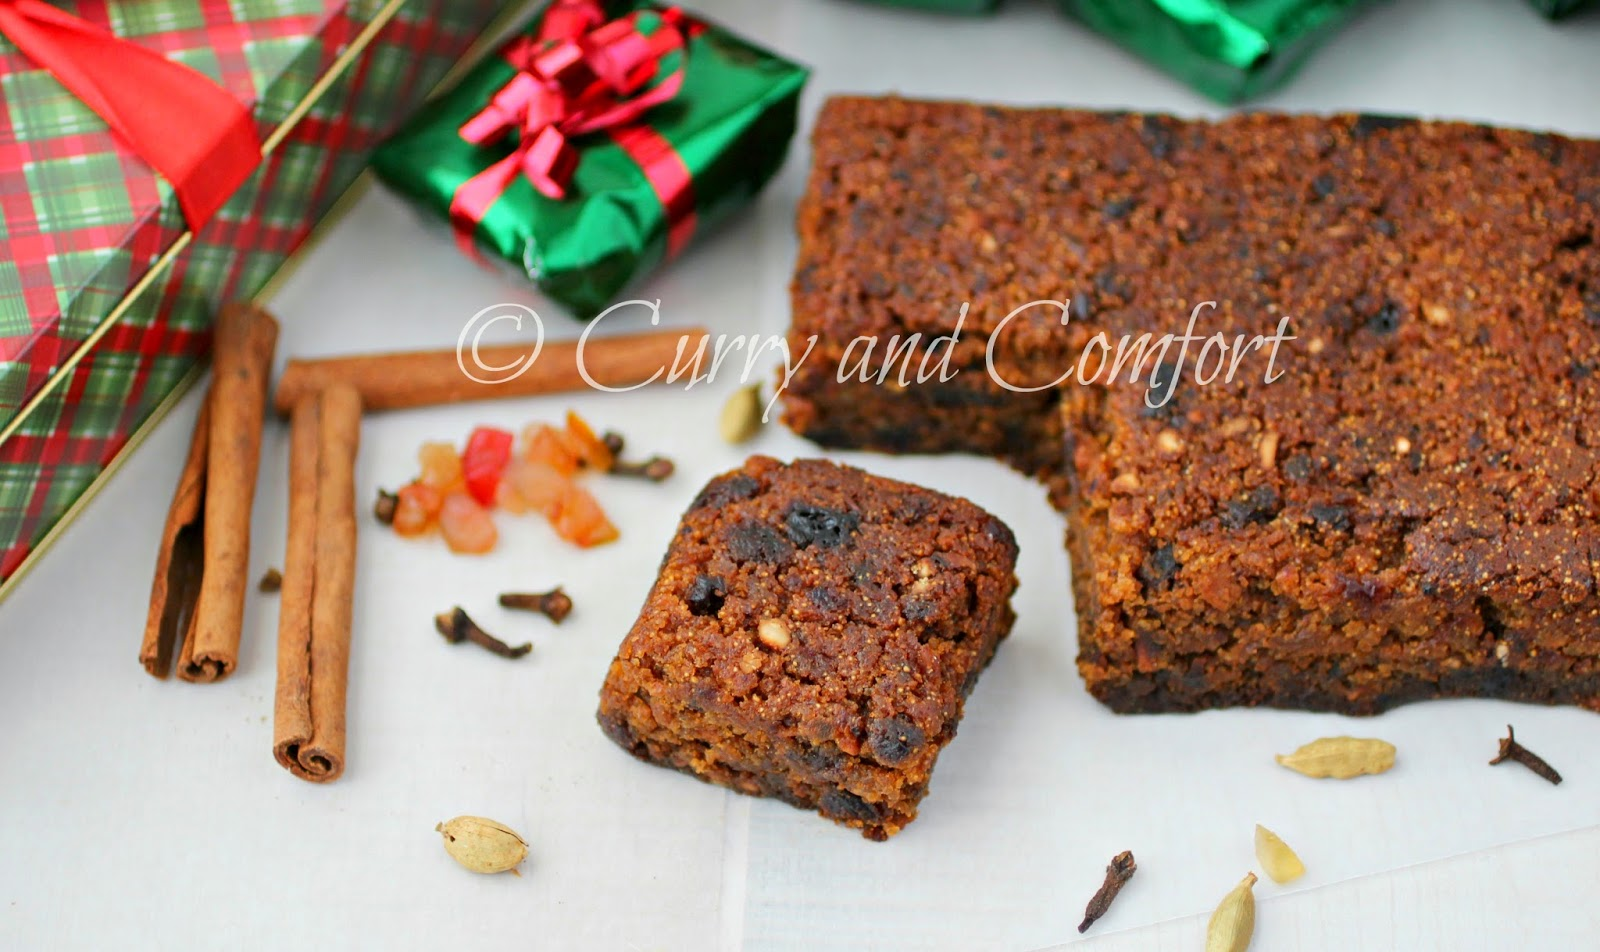 Sri Lankan Christmas Cake Is Not Your Typical Fruit Yes It Has Some And Nuts But S Got So Much More Rich Delicious Ings That